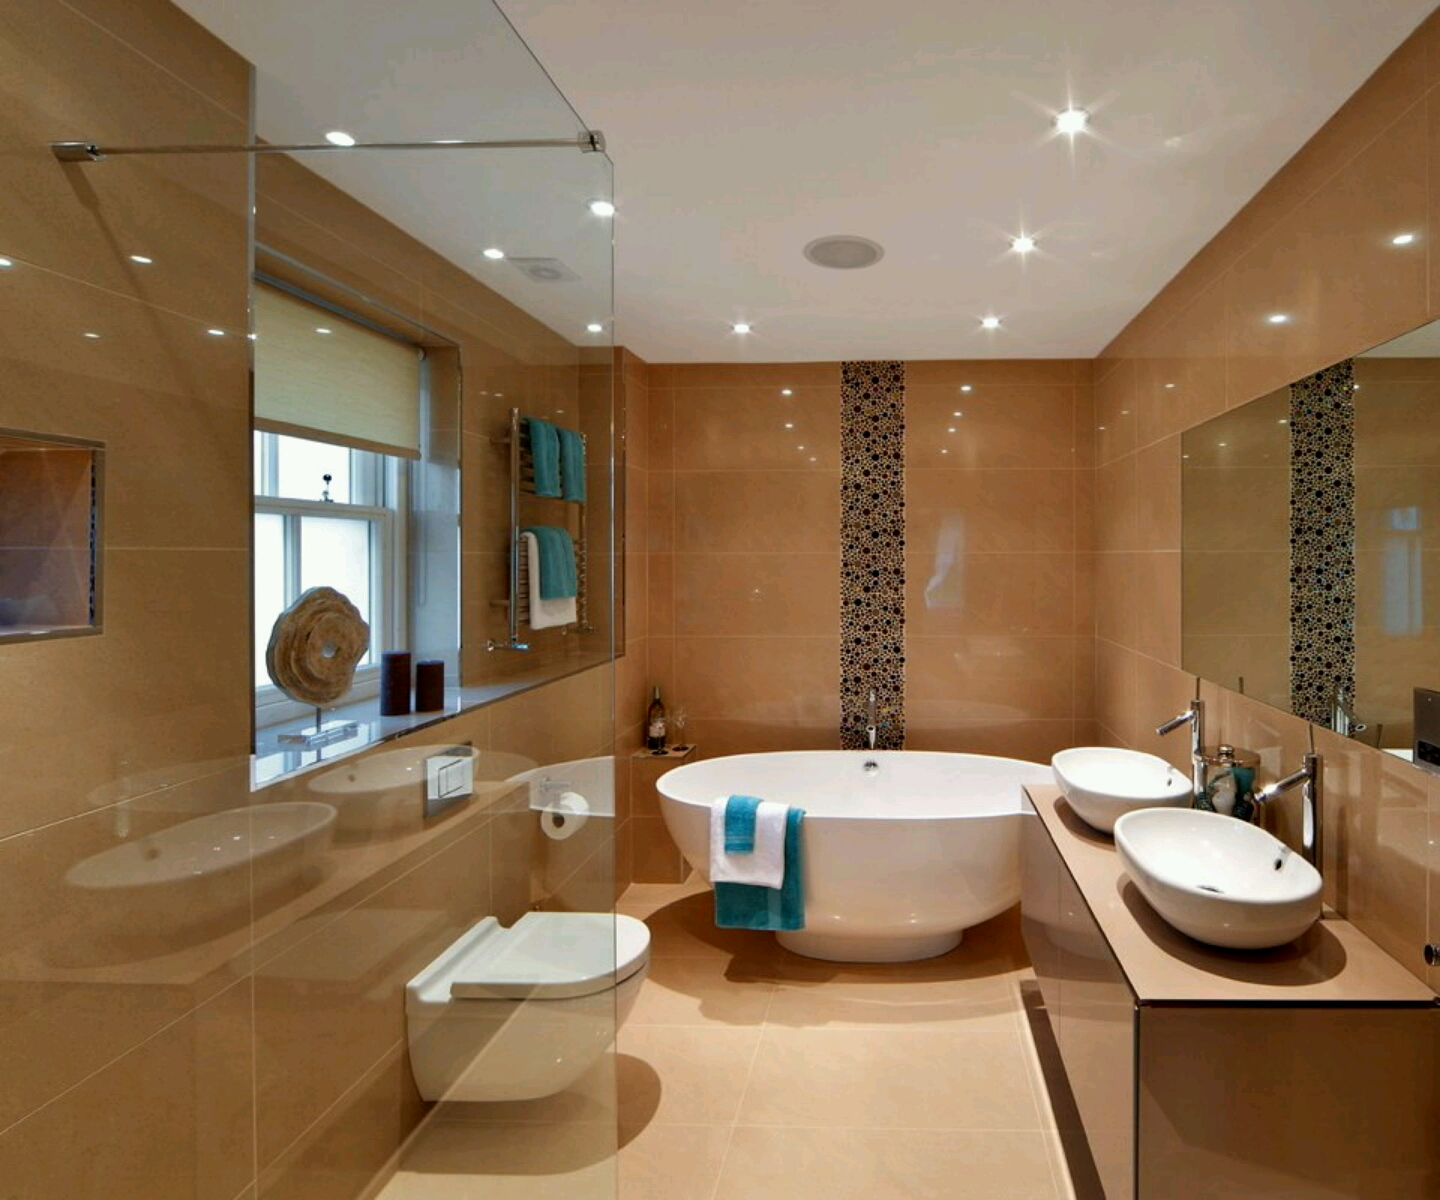 http://4.bp.blogspot.com/-ymZp9CpT7l4/UN8dC_QsBWI/AAAAAAAAfLg/y2vhWCKkarU/s1600/Luxury%20modern%20bathrooms%20designs%20decoration%20ideas.%20(4).jpg